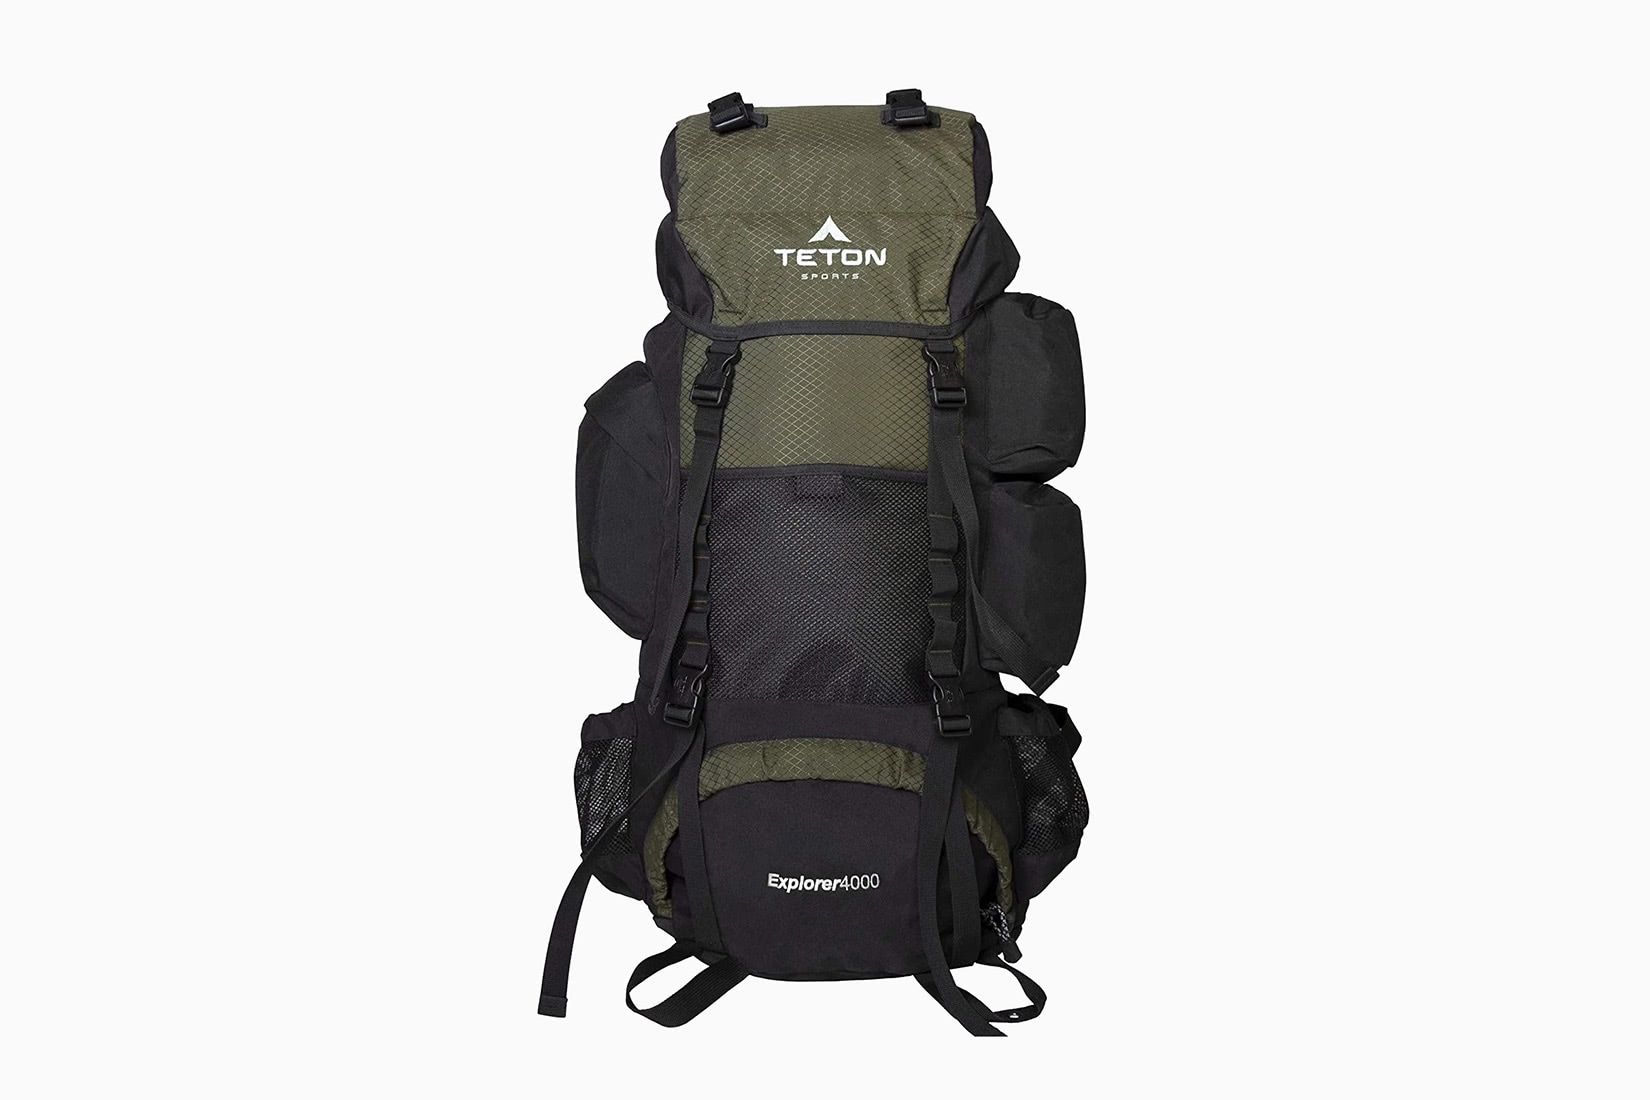 best travel backpack TETON sports explorer 4000 - Luxe Digital